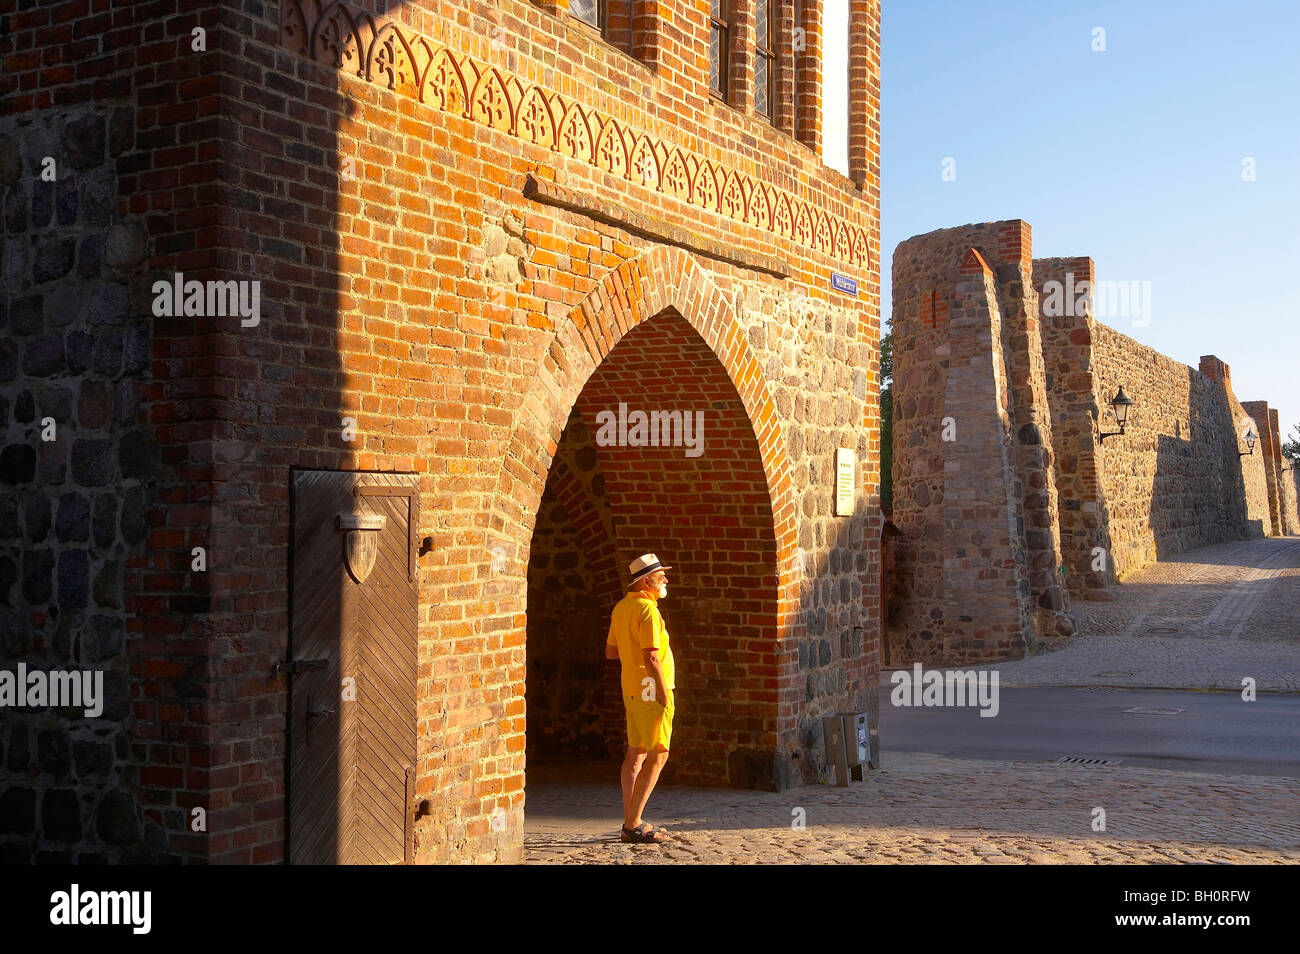 with the houseboat  on the 'Templiner Gewaesser', Muehlentor, Templin, Brandenburg, Germany, Europe - Stock Image